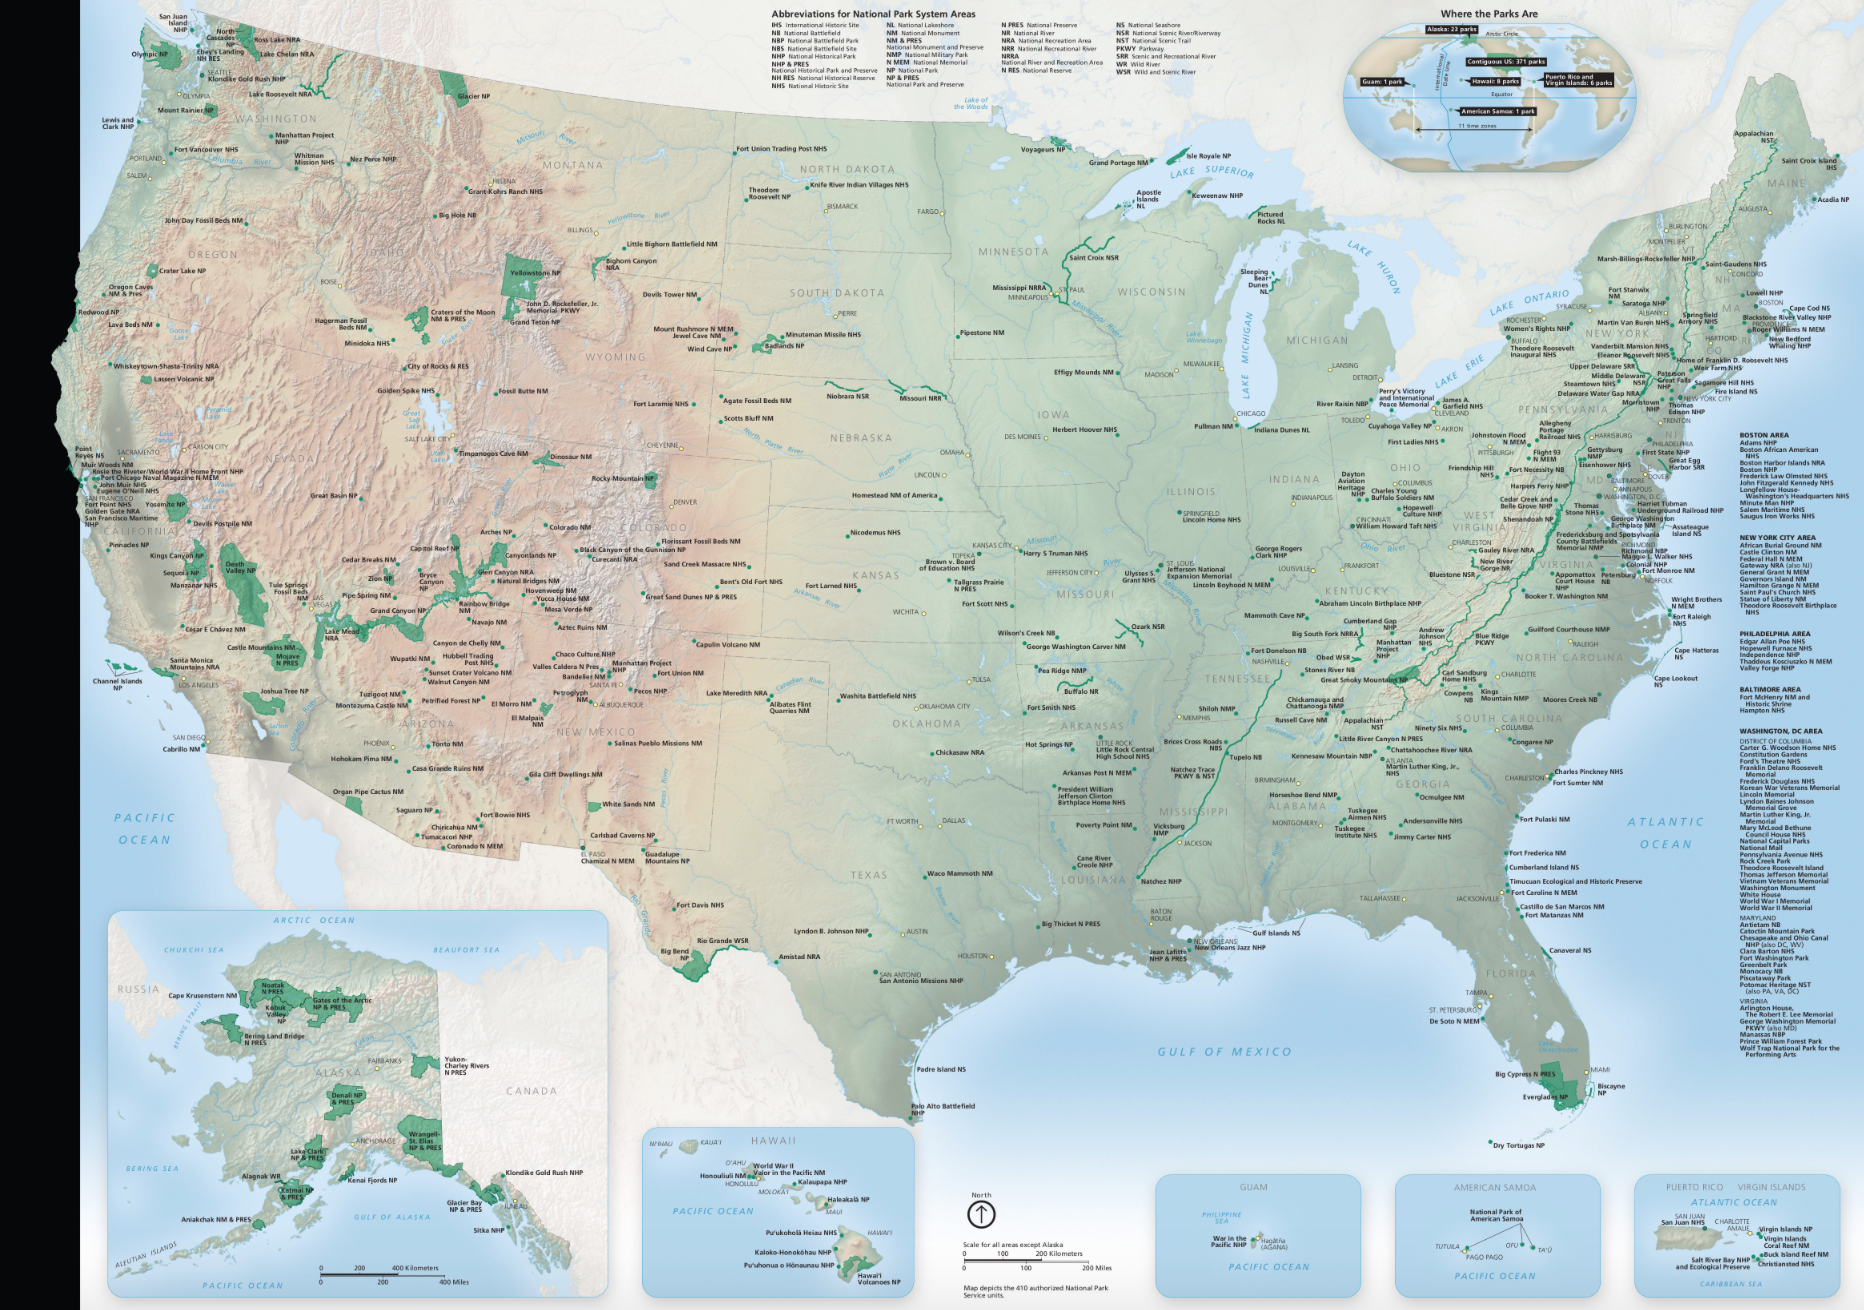 Every National Park Map Now Digitized for Your Convenience